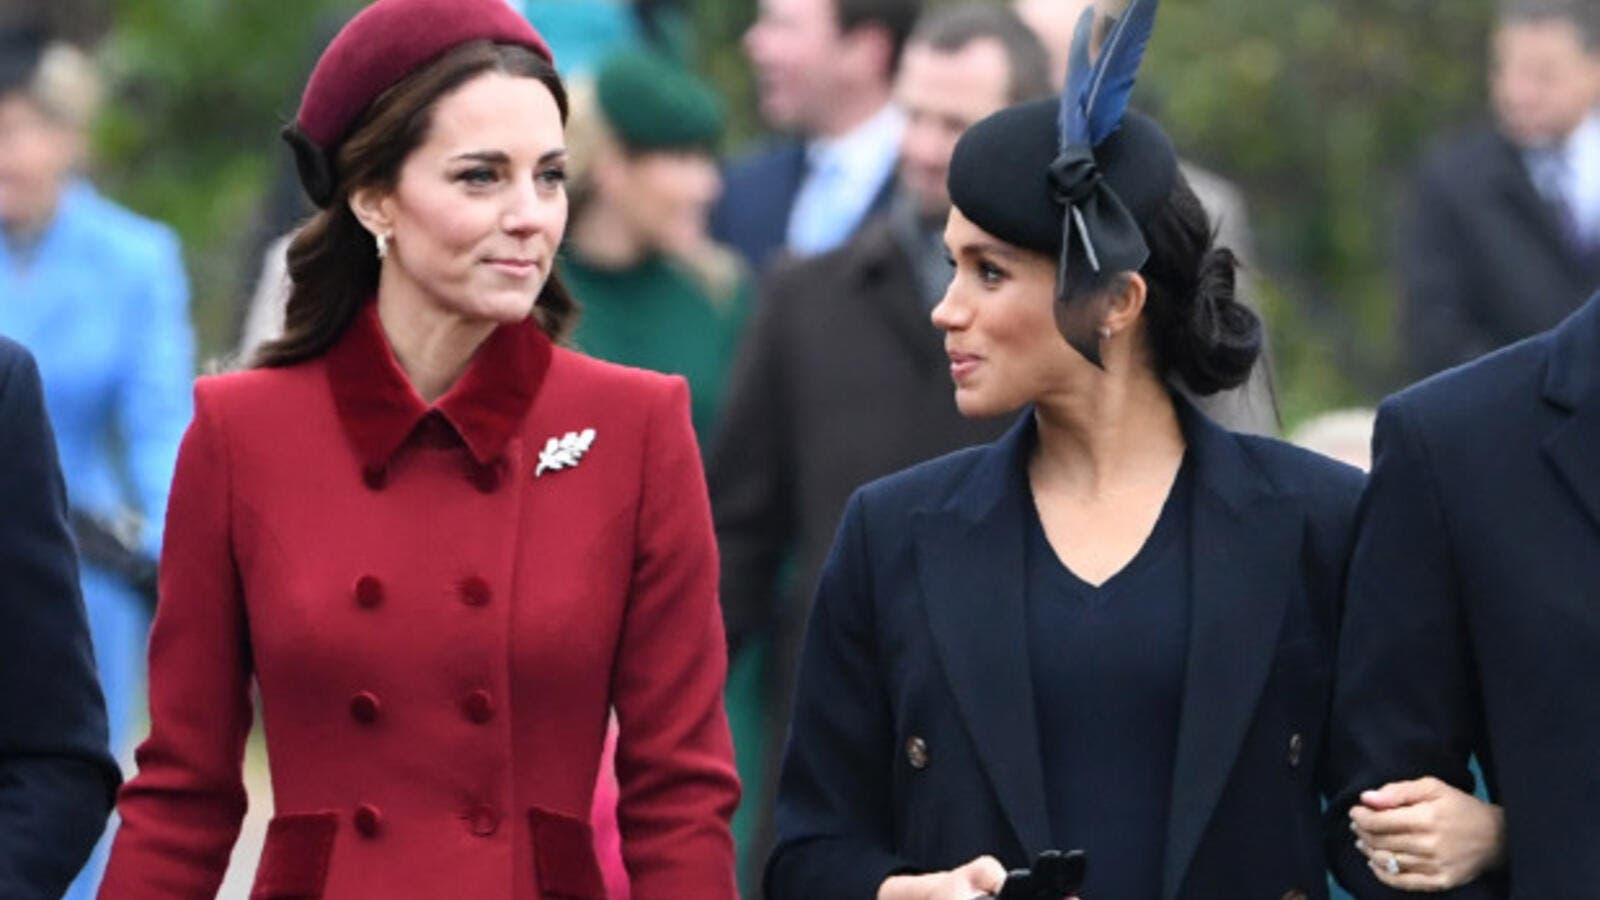 Britain's Catherine, Duchess of Cambridge (L) talks to Meghan, Duchess of Sussex as they arrive for the Royal Family's traditional Christmas Day service at St Mary Magdalene Church. (AFP/File)